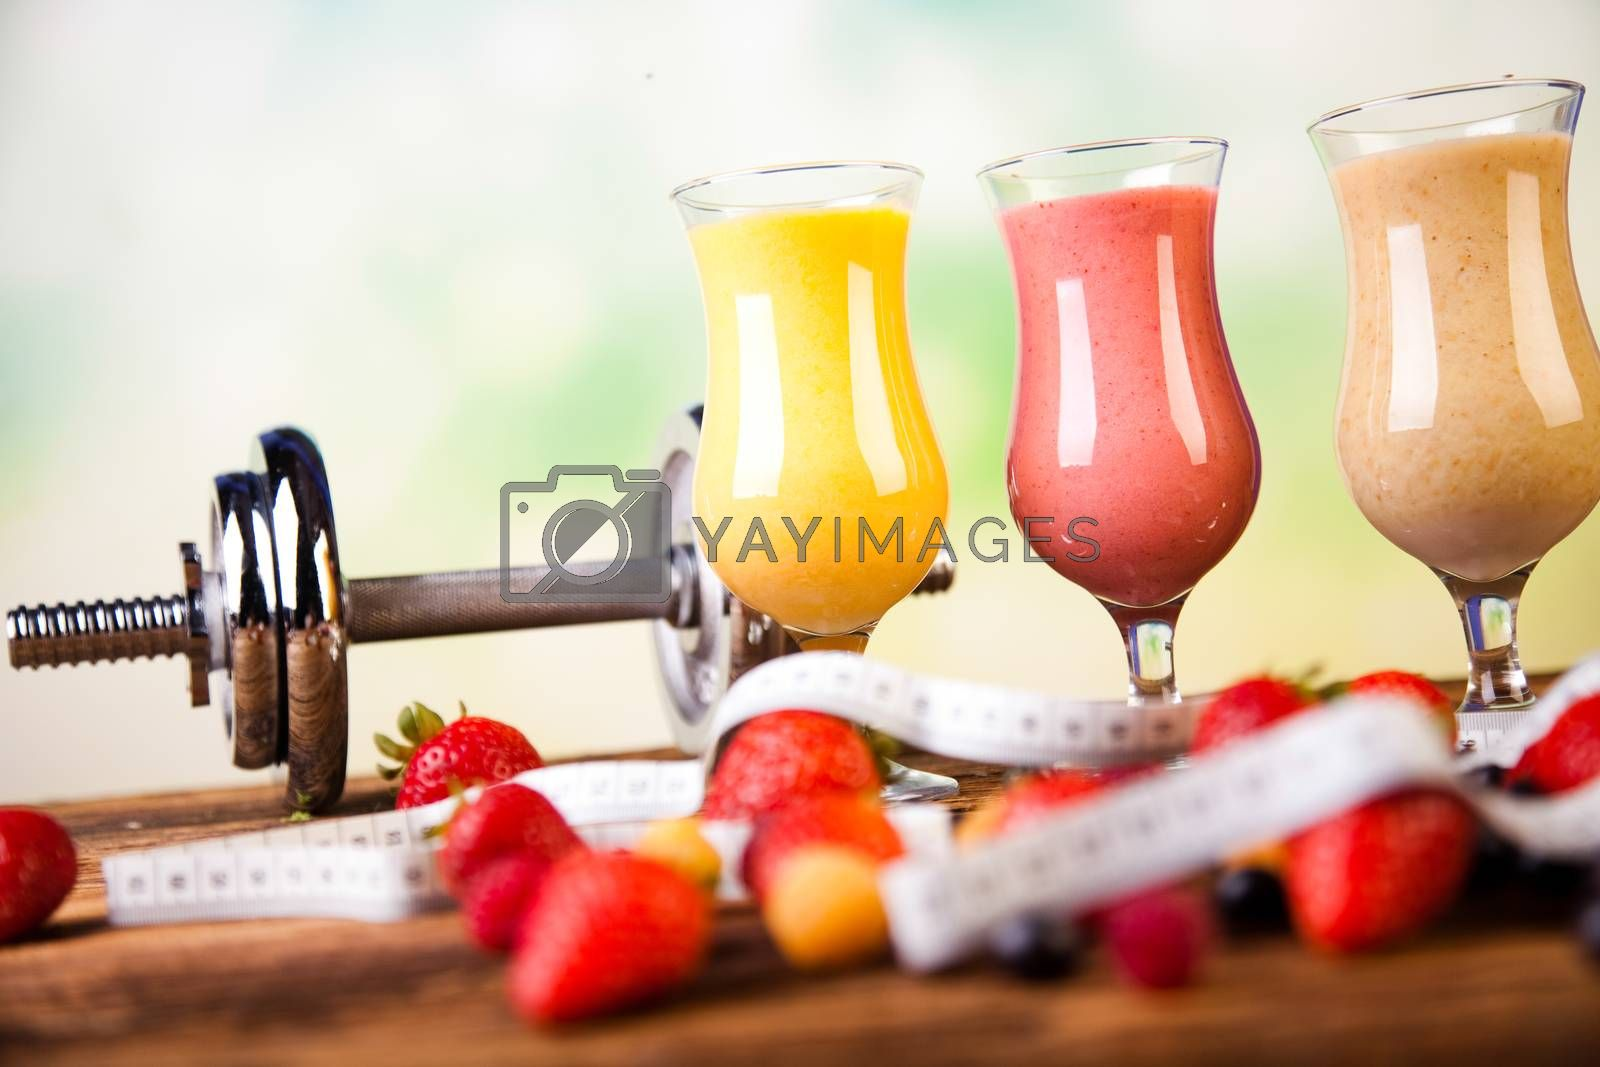 Protein shakes, sport and fitness by JanPietruszka